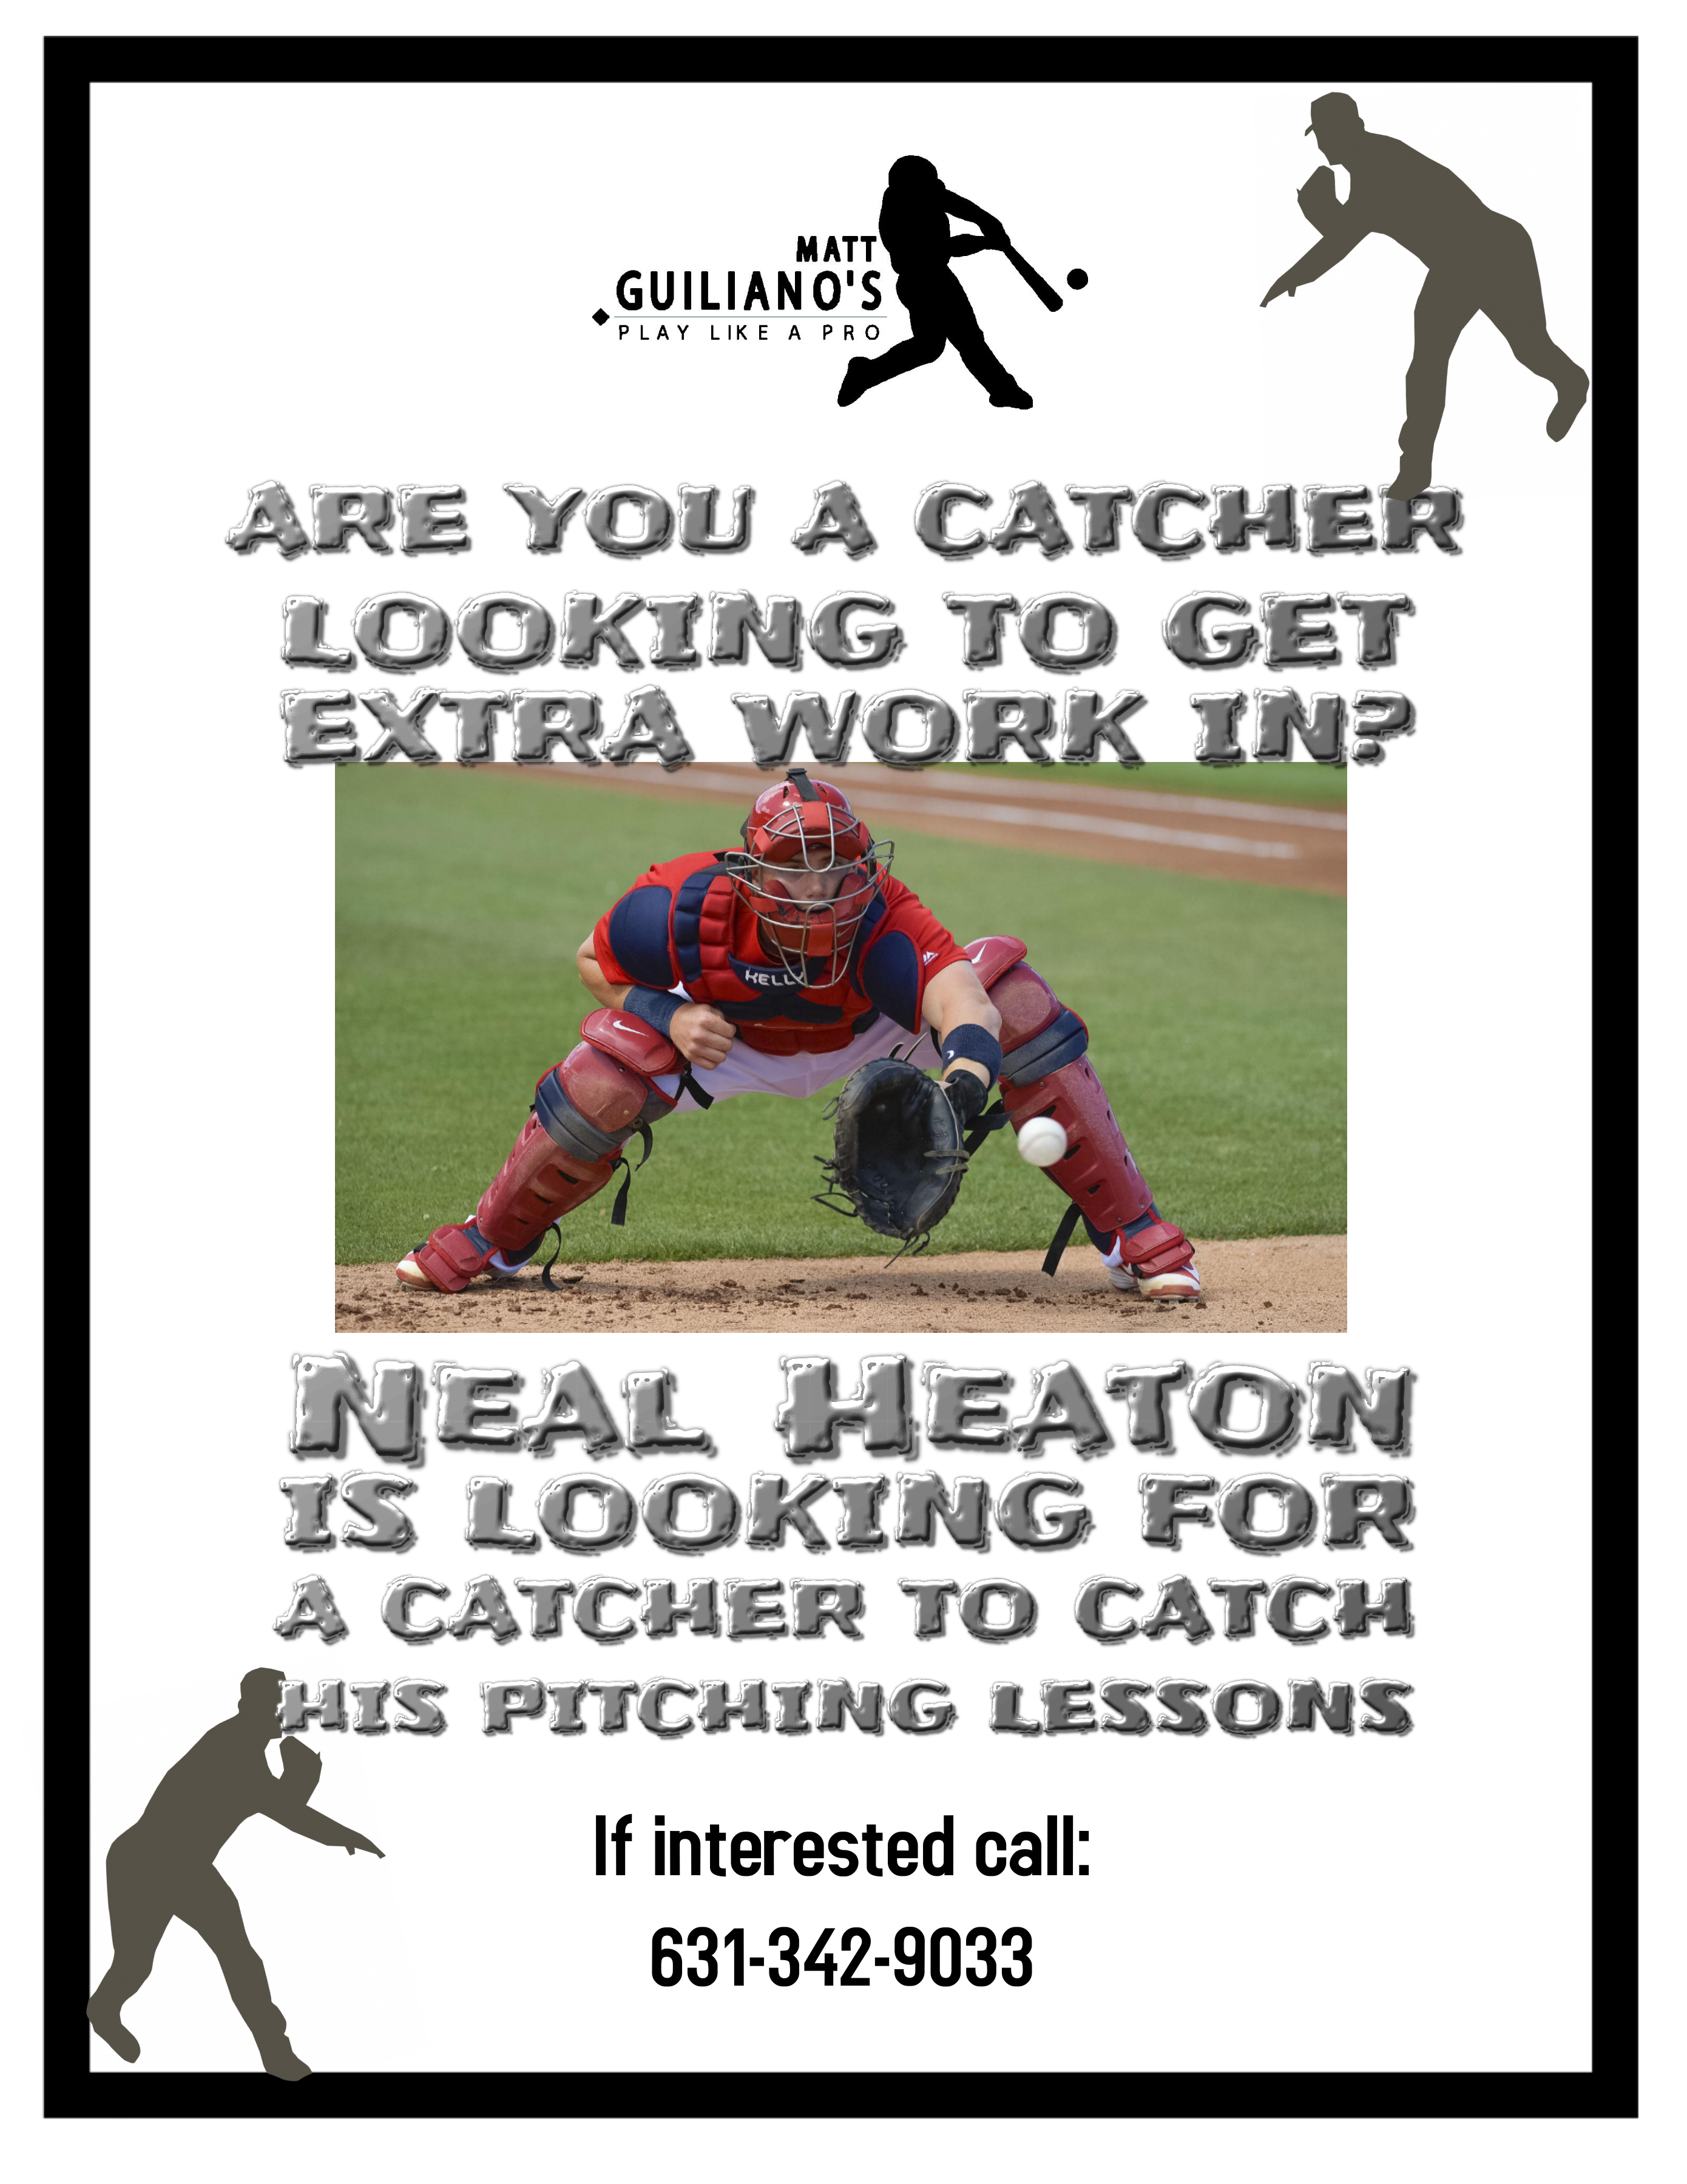 Neal needs a catcher!